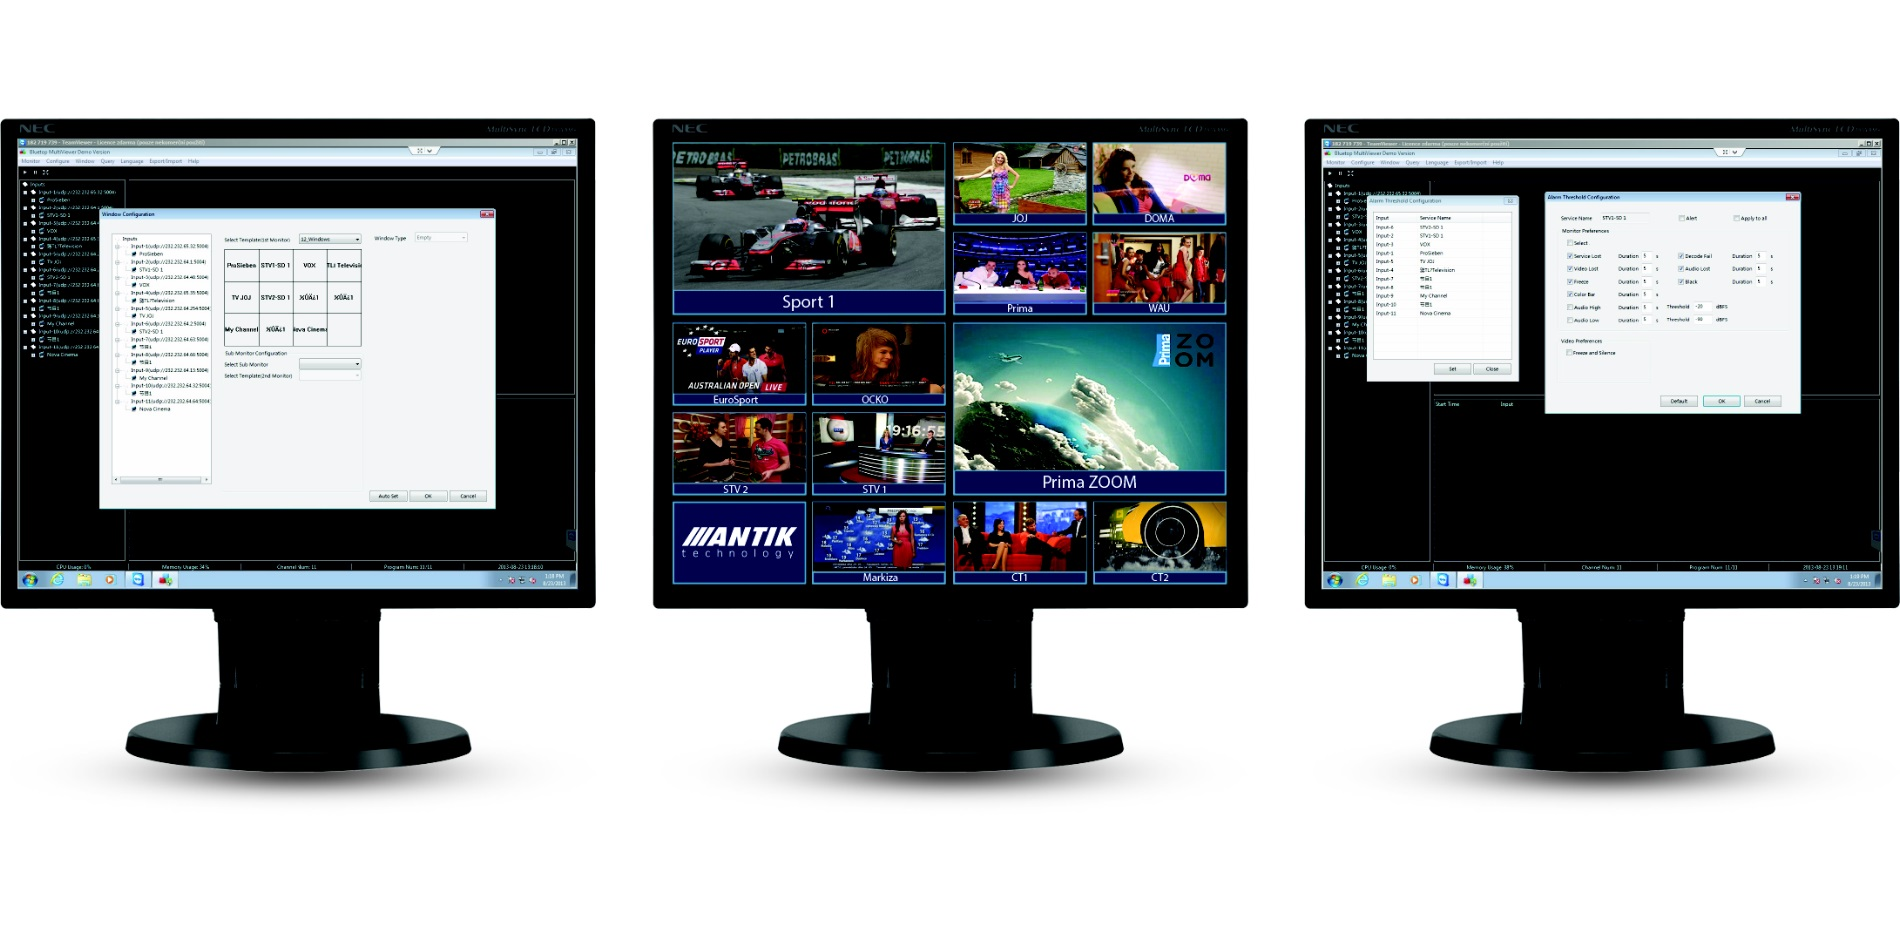 STREAMINGIPTV HEADEND > Monitoring > Multiview Monitoring room